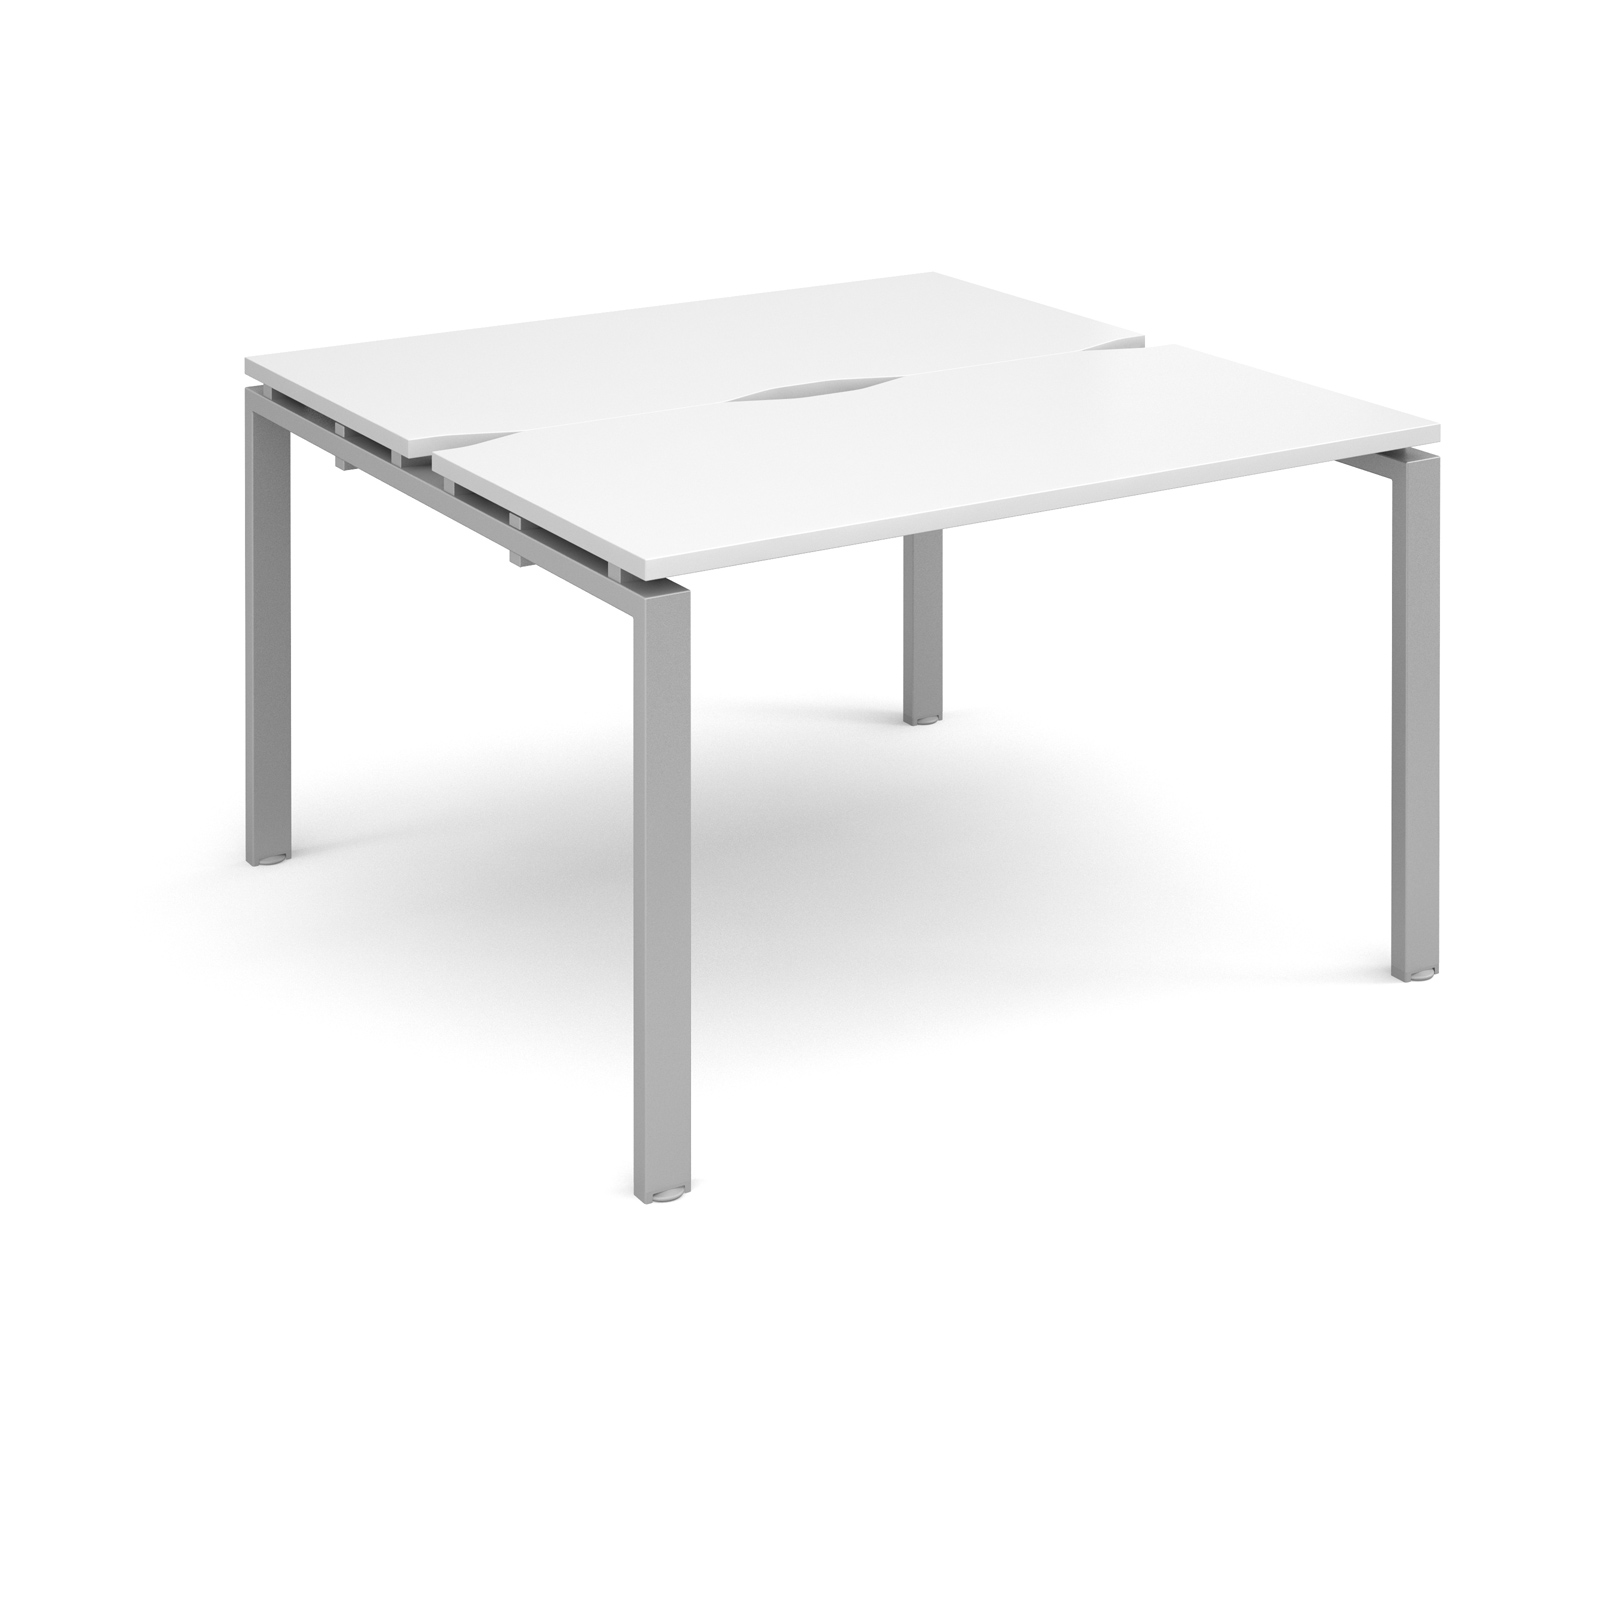 Adapt II 1200 x 1200 x 725mm Back to Back Desk - White / Silver Leg